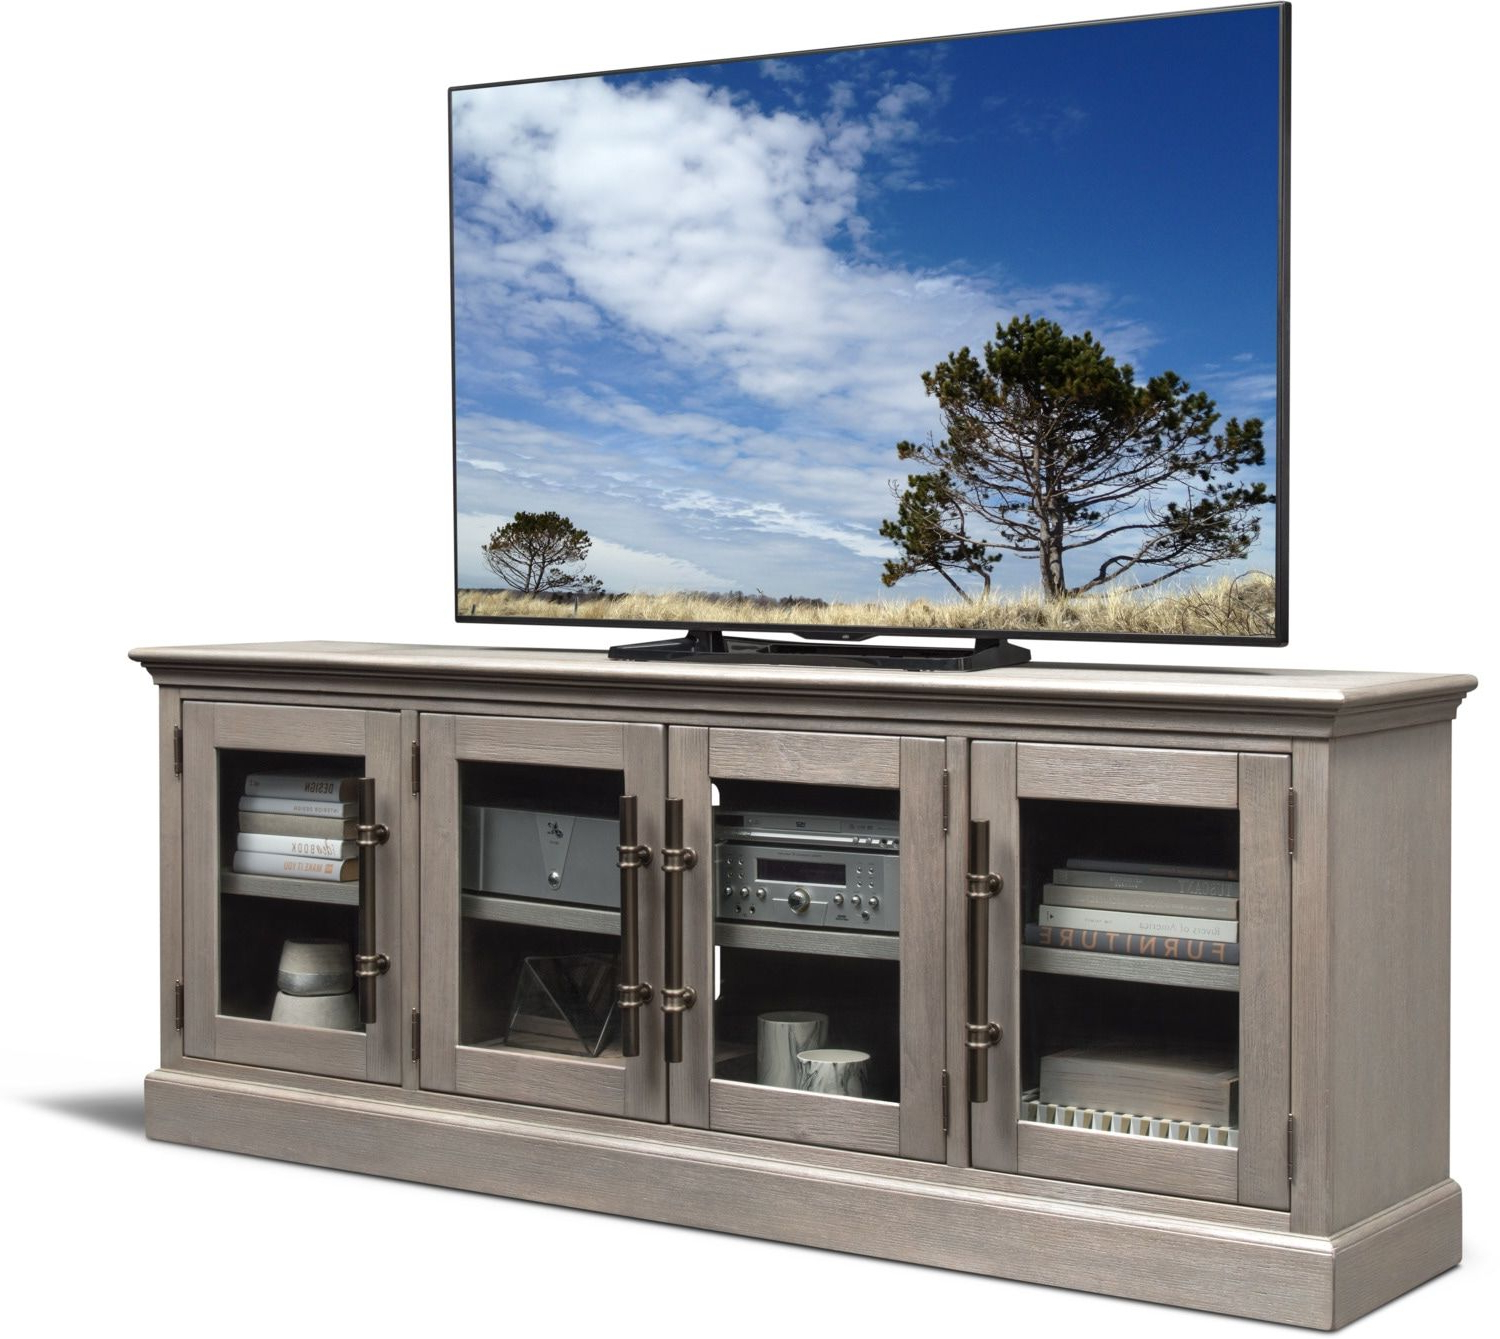 Living Rooms, Bedrooms, Dining Rooms, Reclining Furniture With Regard To Wakefield 85 Inch Tv Stands (View 2 of 20)